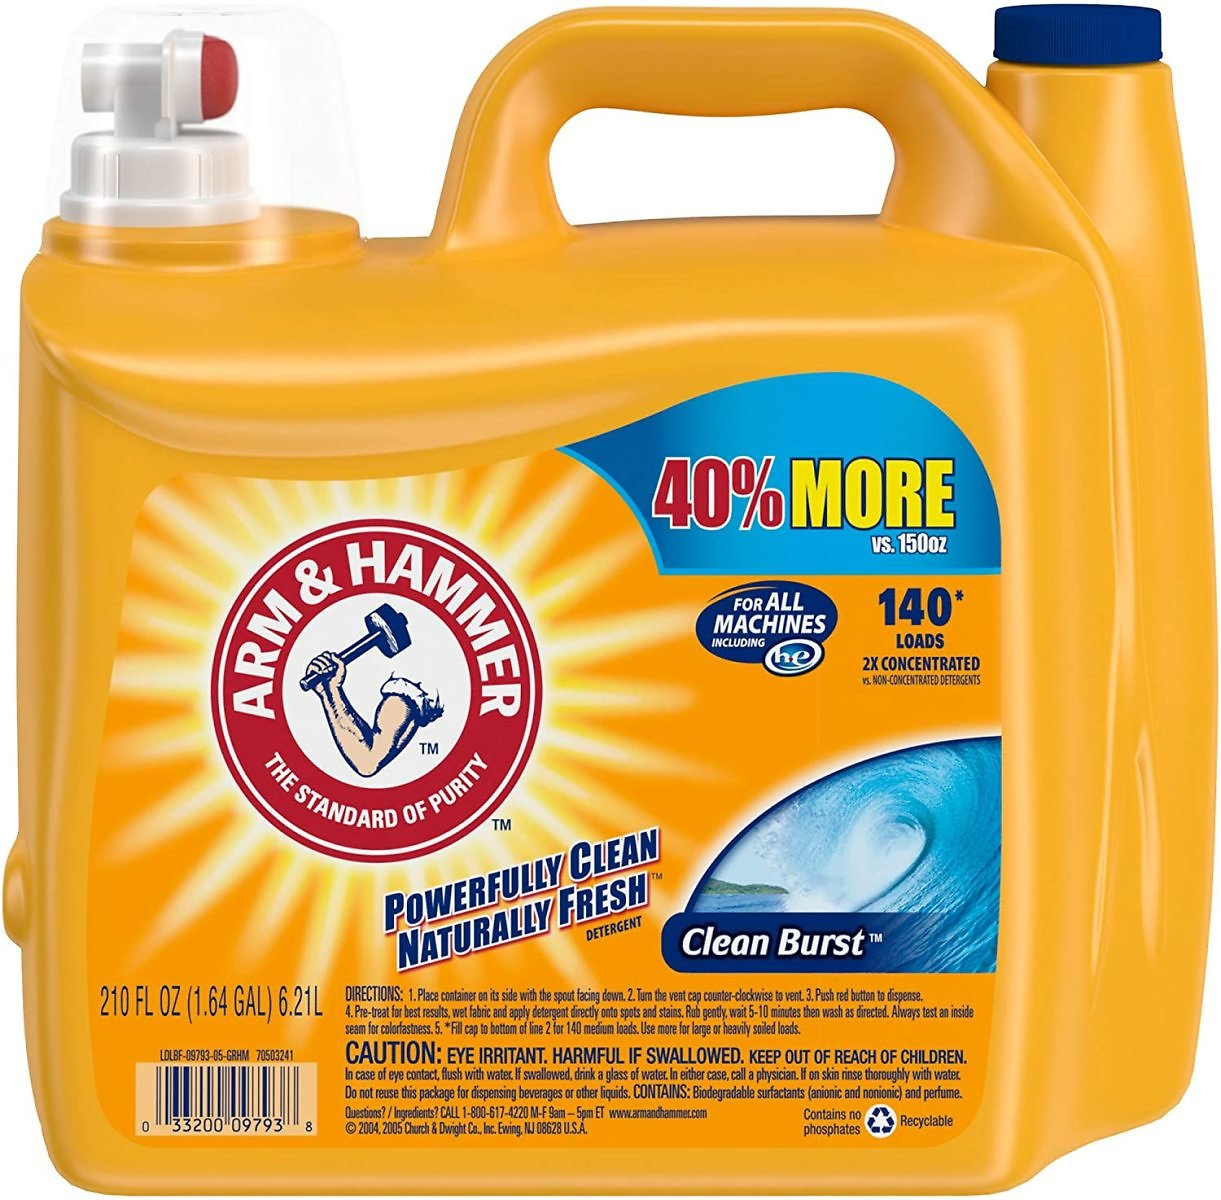 Arm & Hammer Clean Burst Liquid Laundry Detergent (140 Loads)